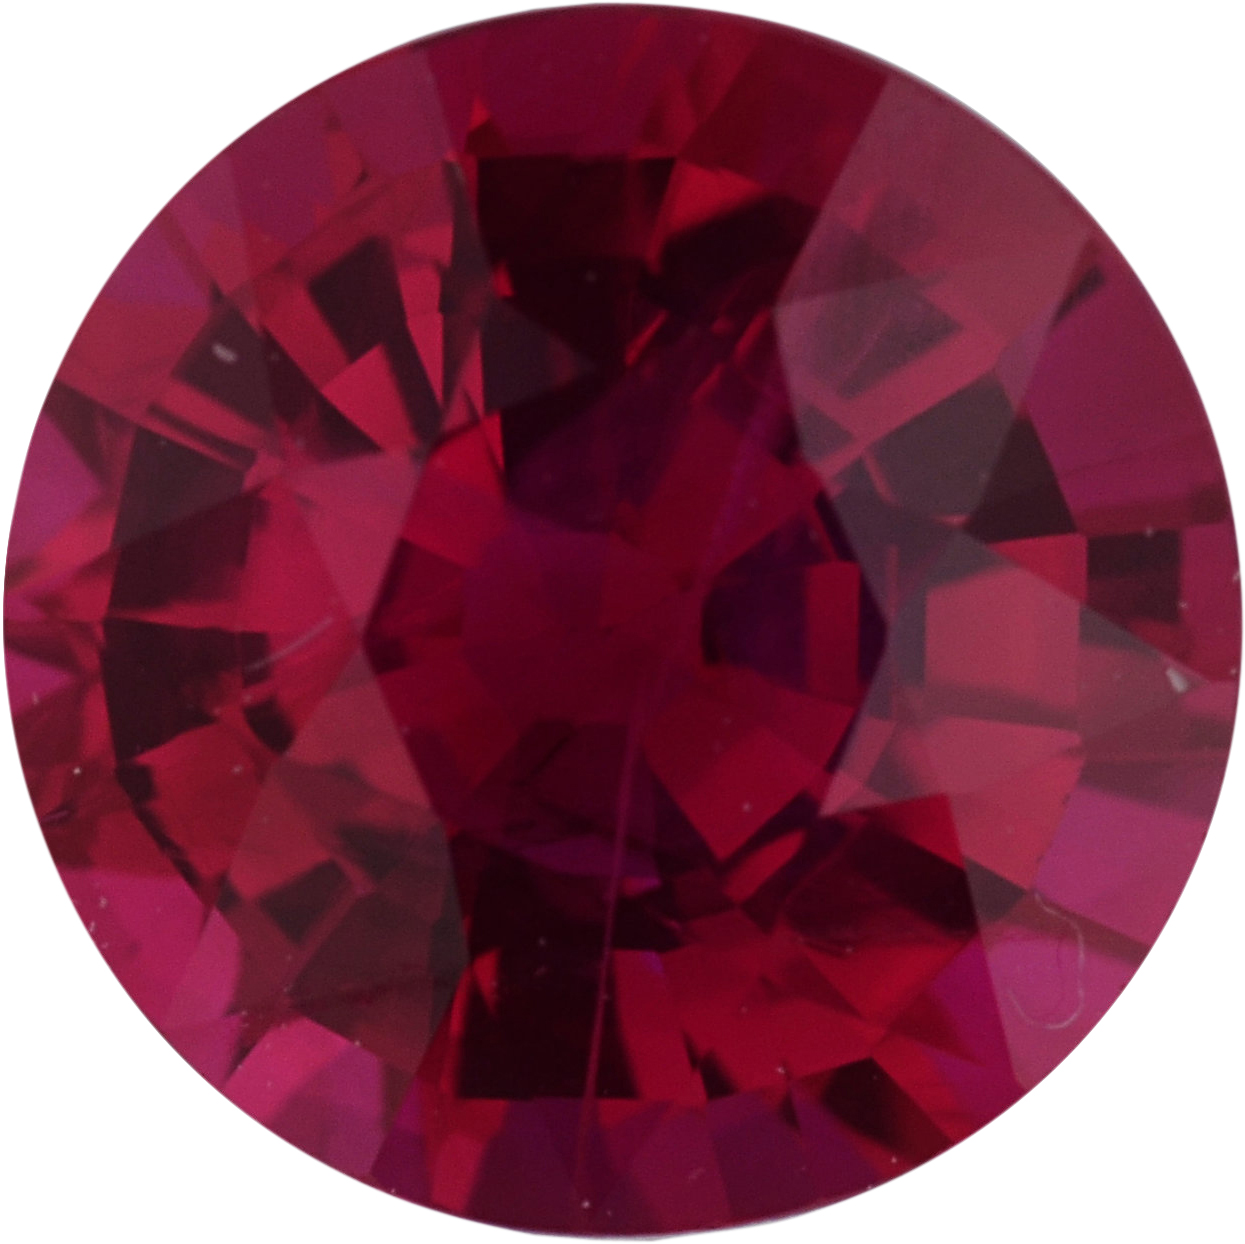 Great Deal on Round Cut Loose Ruby Gem,  Red Color, 6.16 mm, 1.12 carats